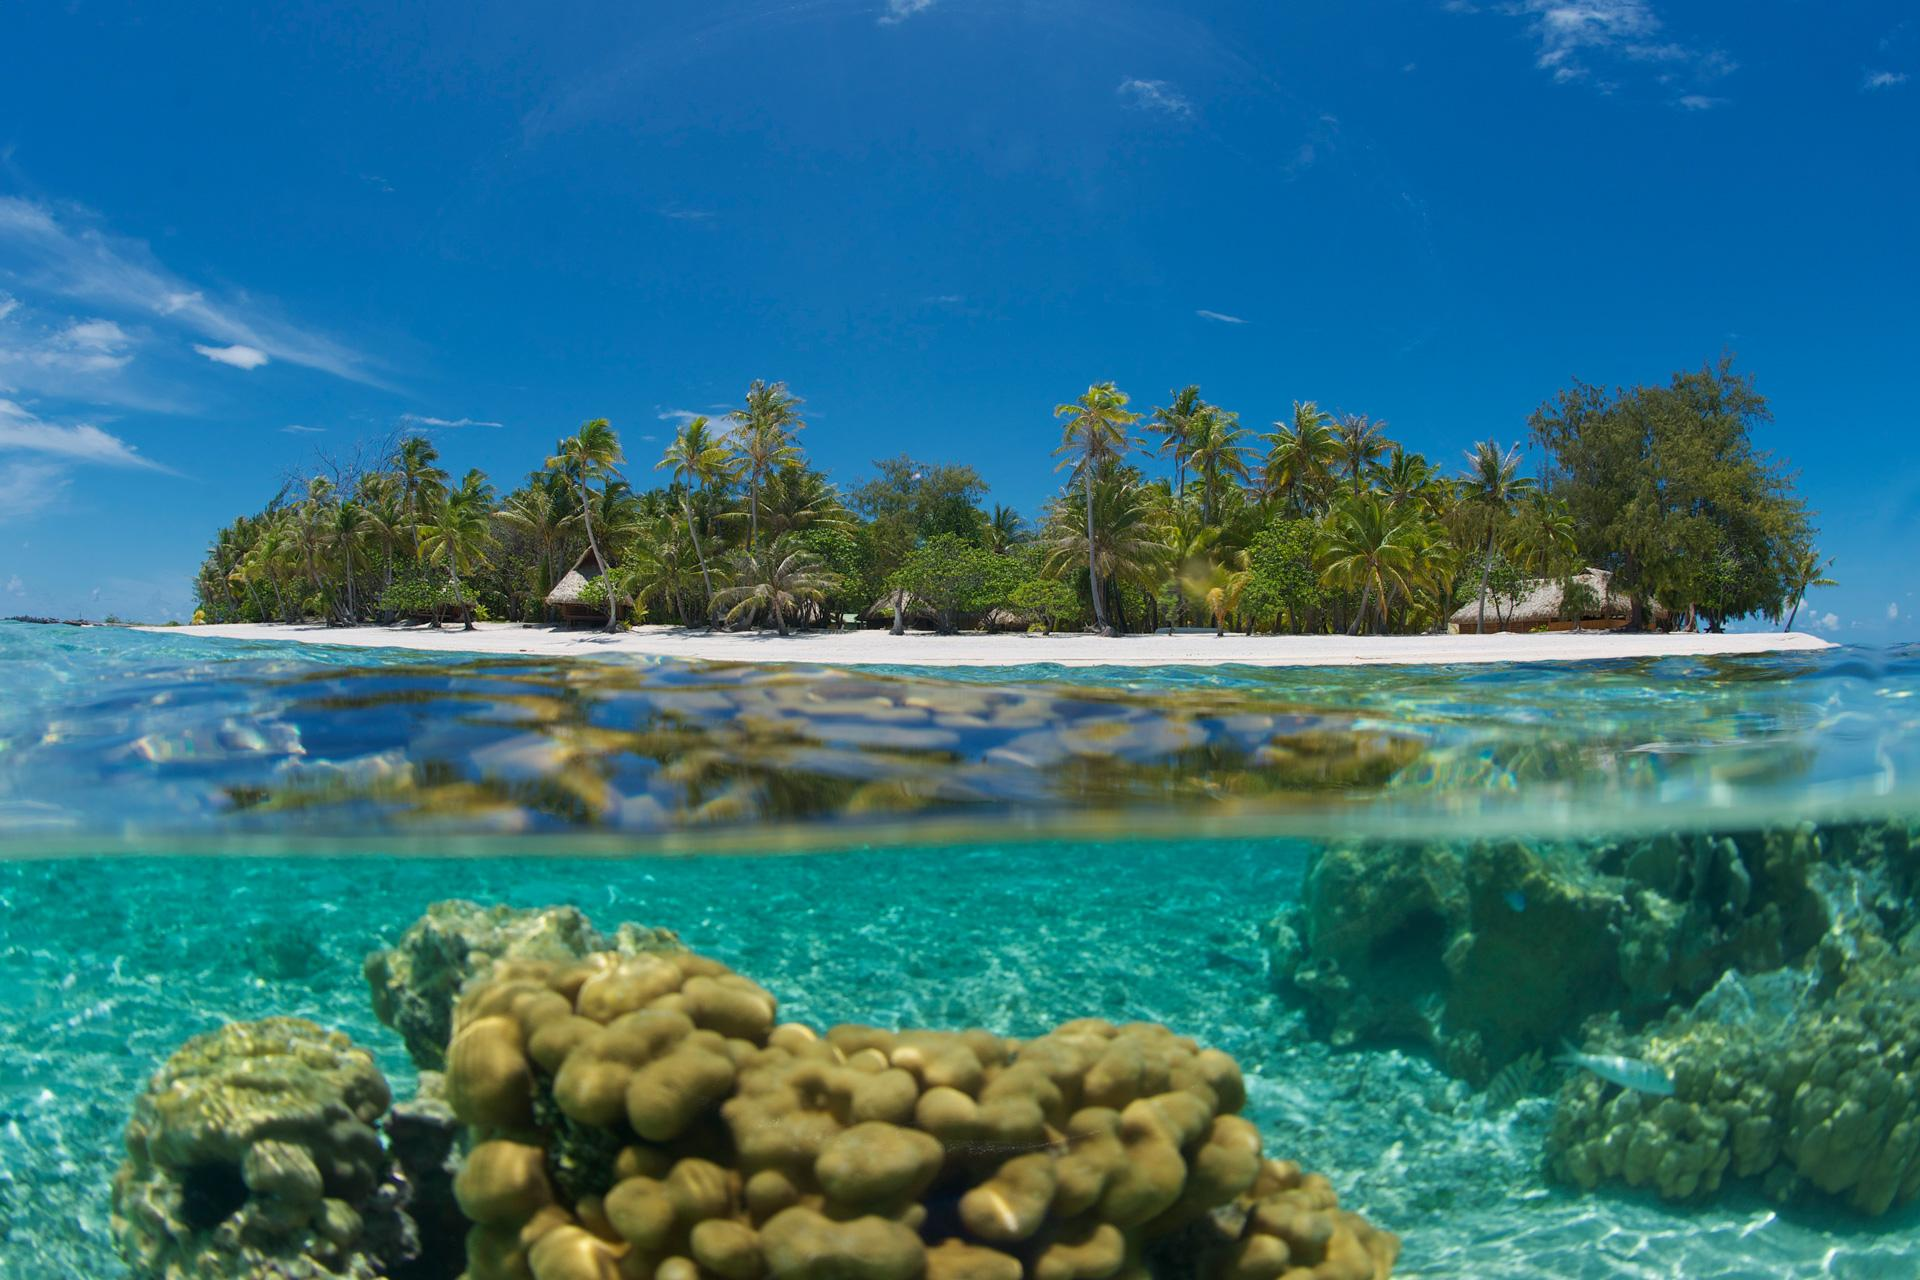 Romantic Tahiti Vacation: Private, Secluded, Remote